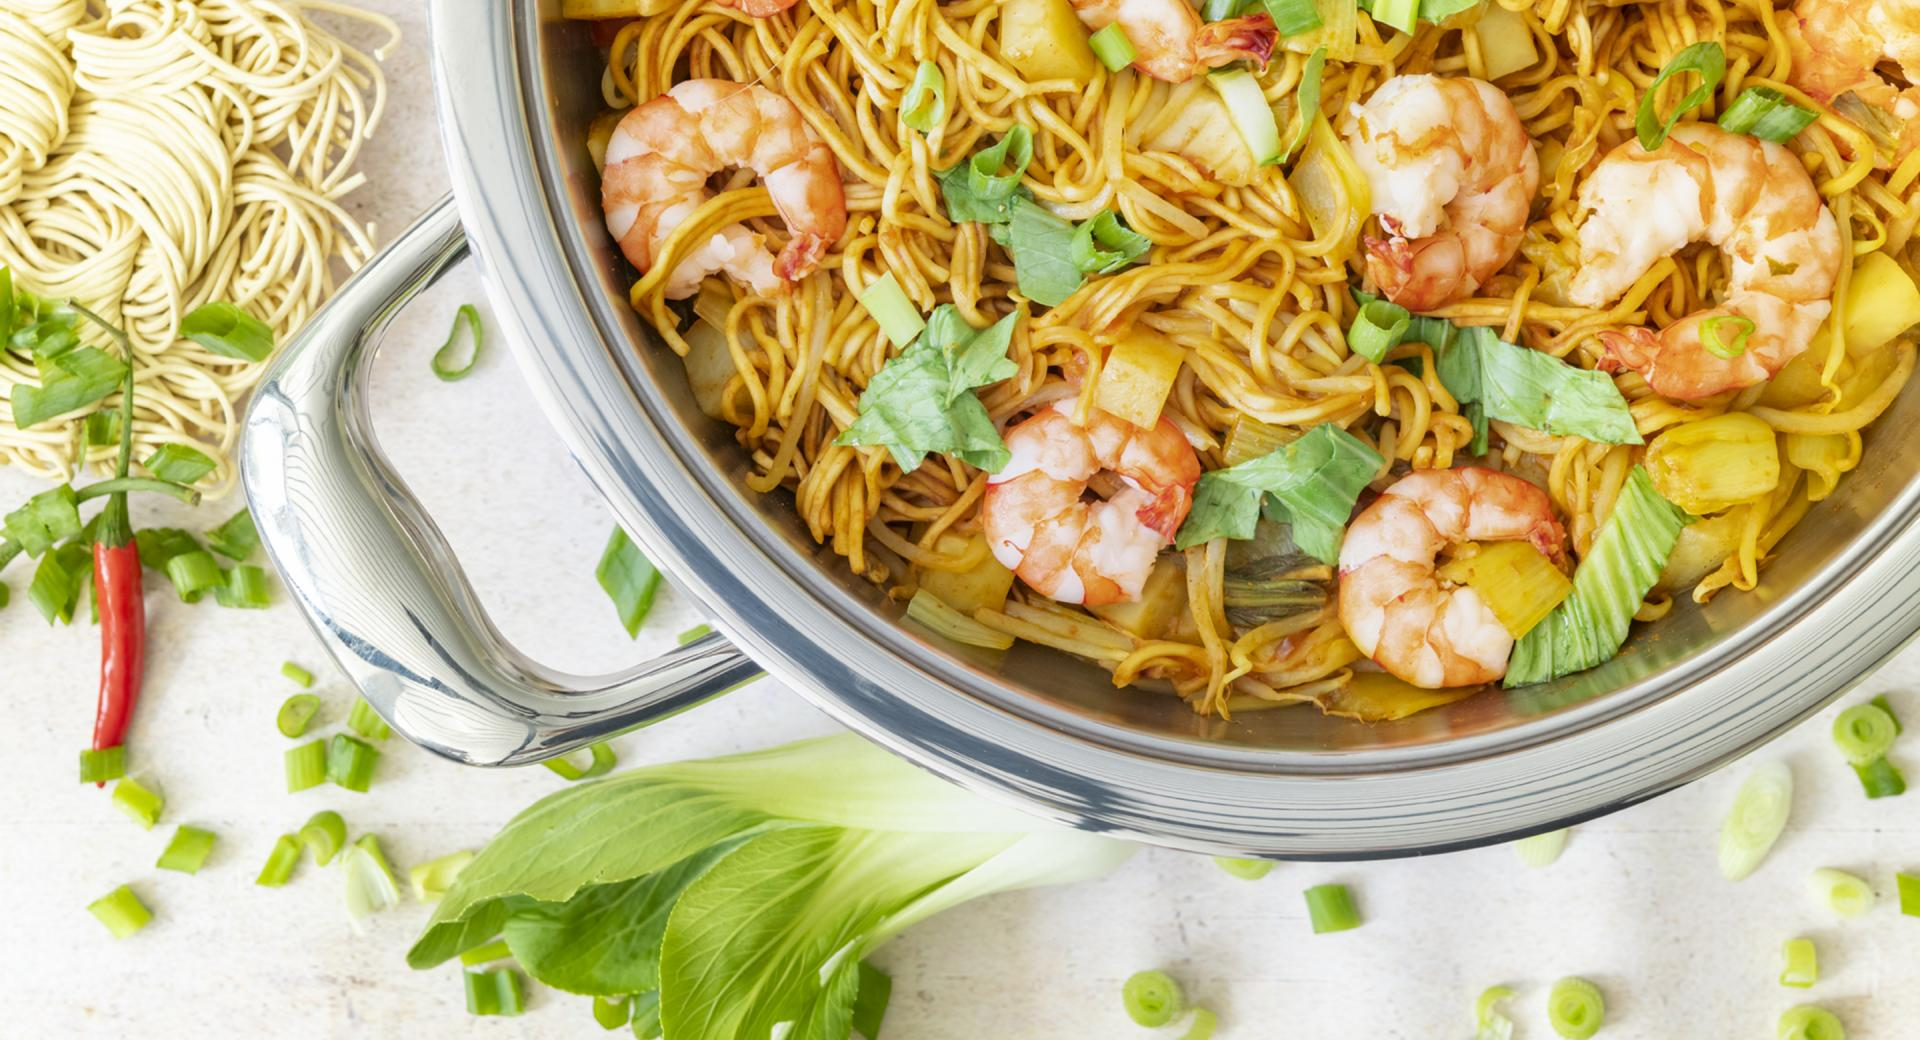 Noodles with prawns and pak choi